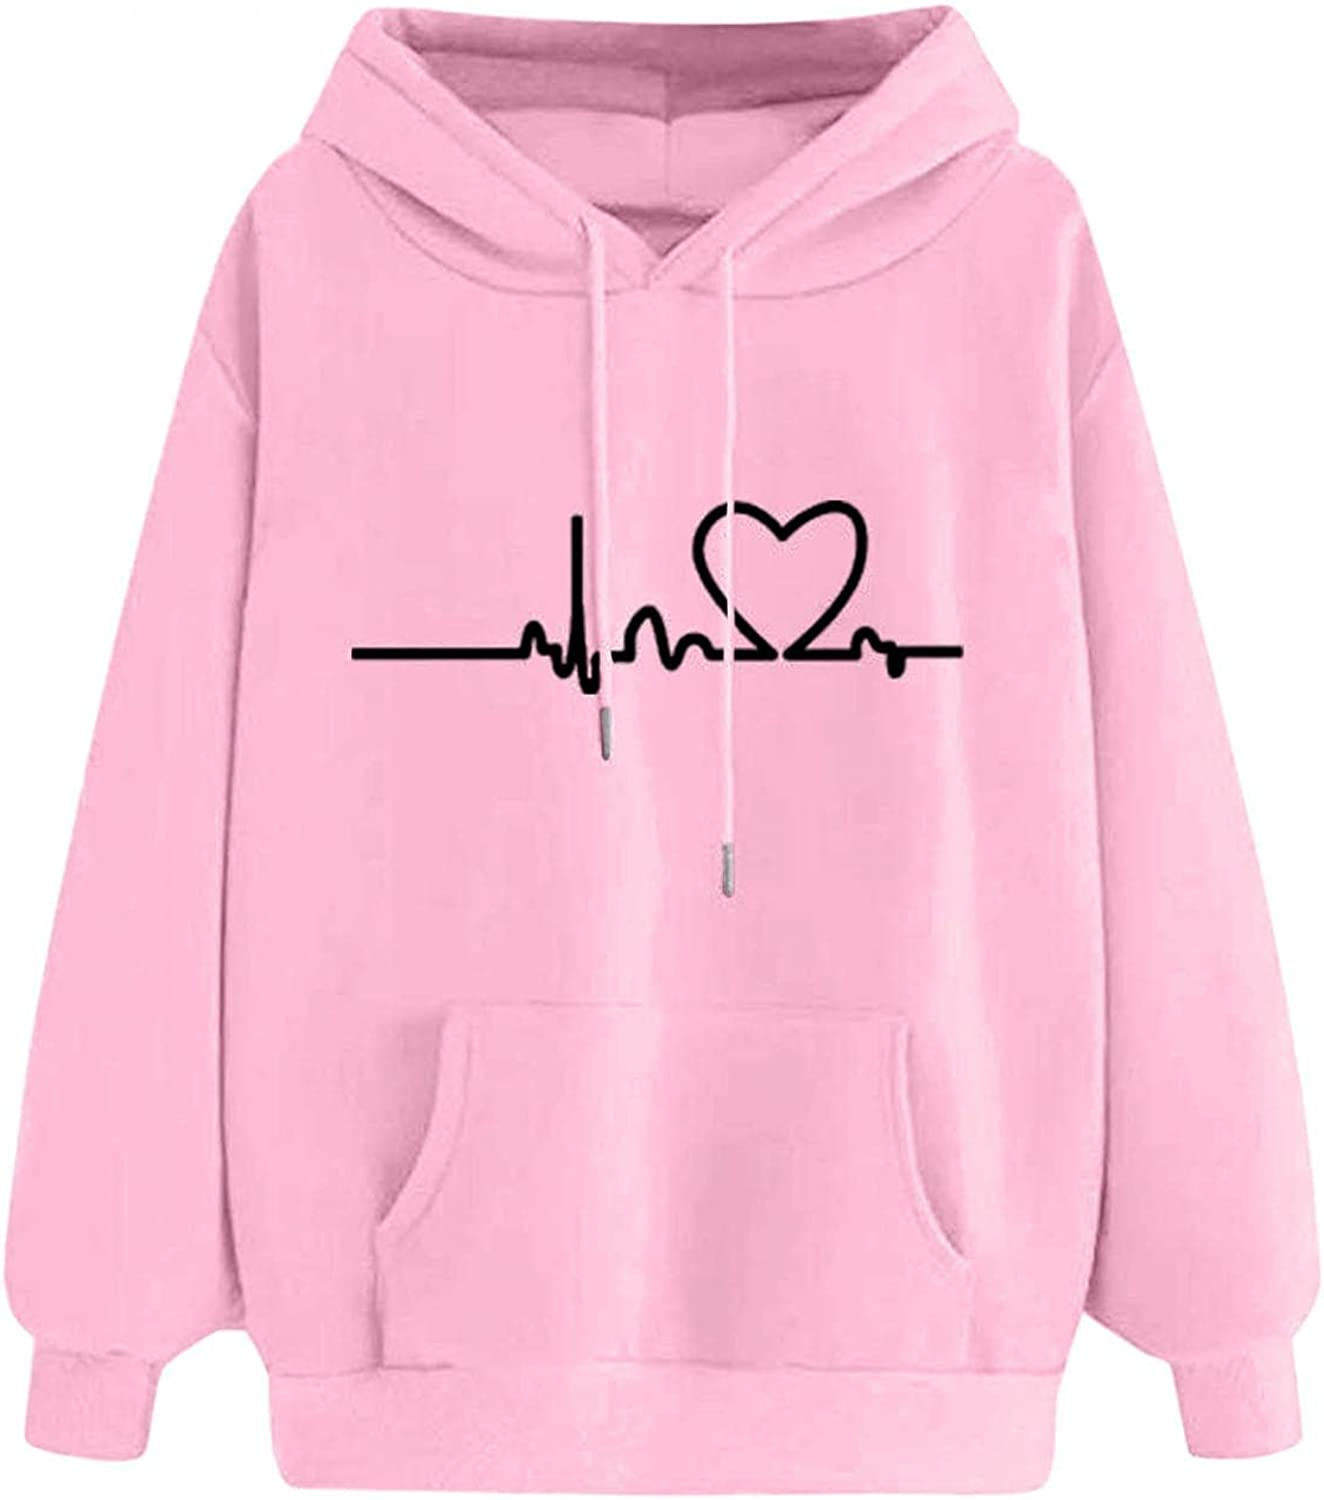 Solid Color New mail order Love Heart Graphic Basic New Shipping Free Shipping Hoodies for Blouse Wom Tops